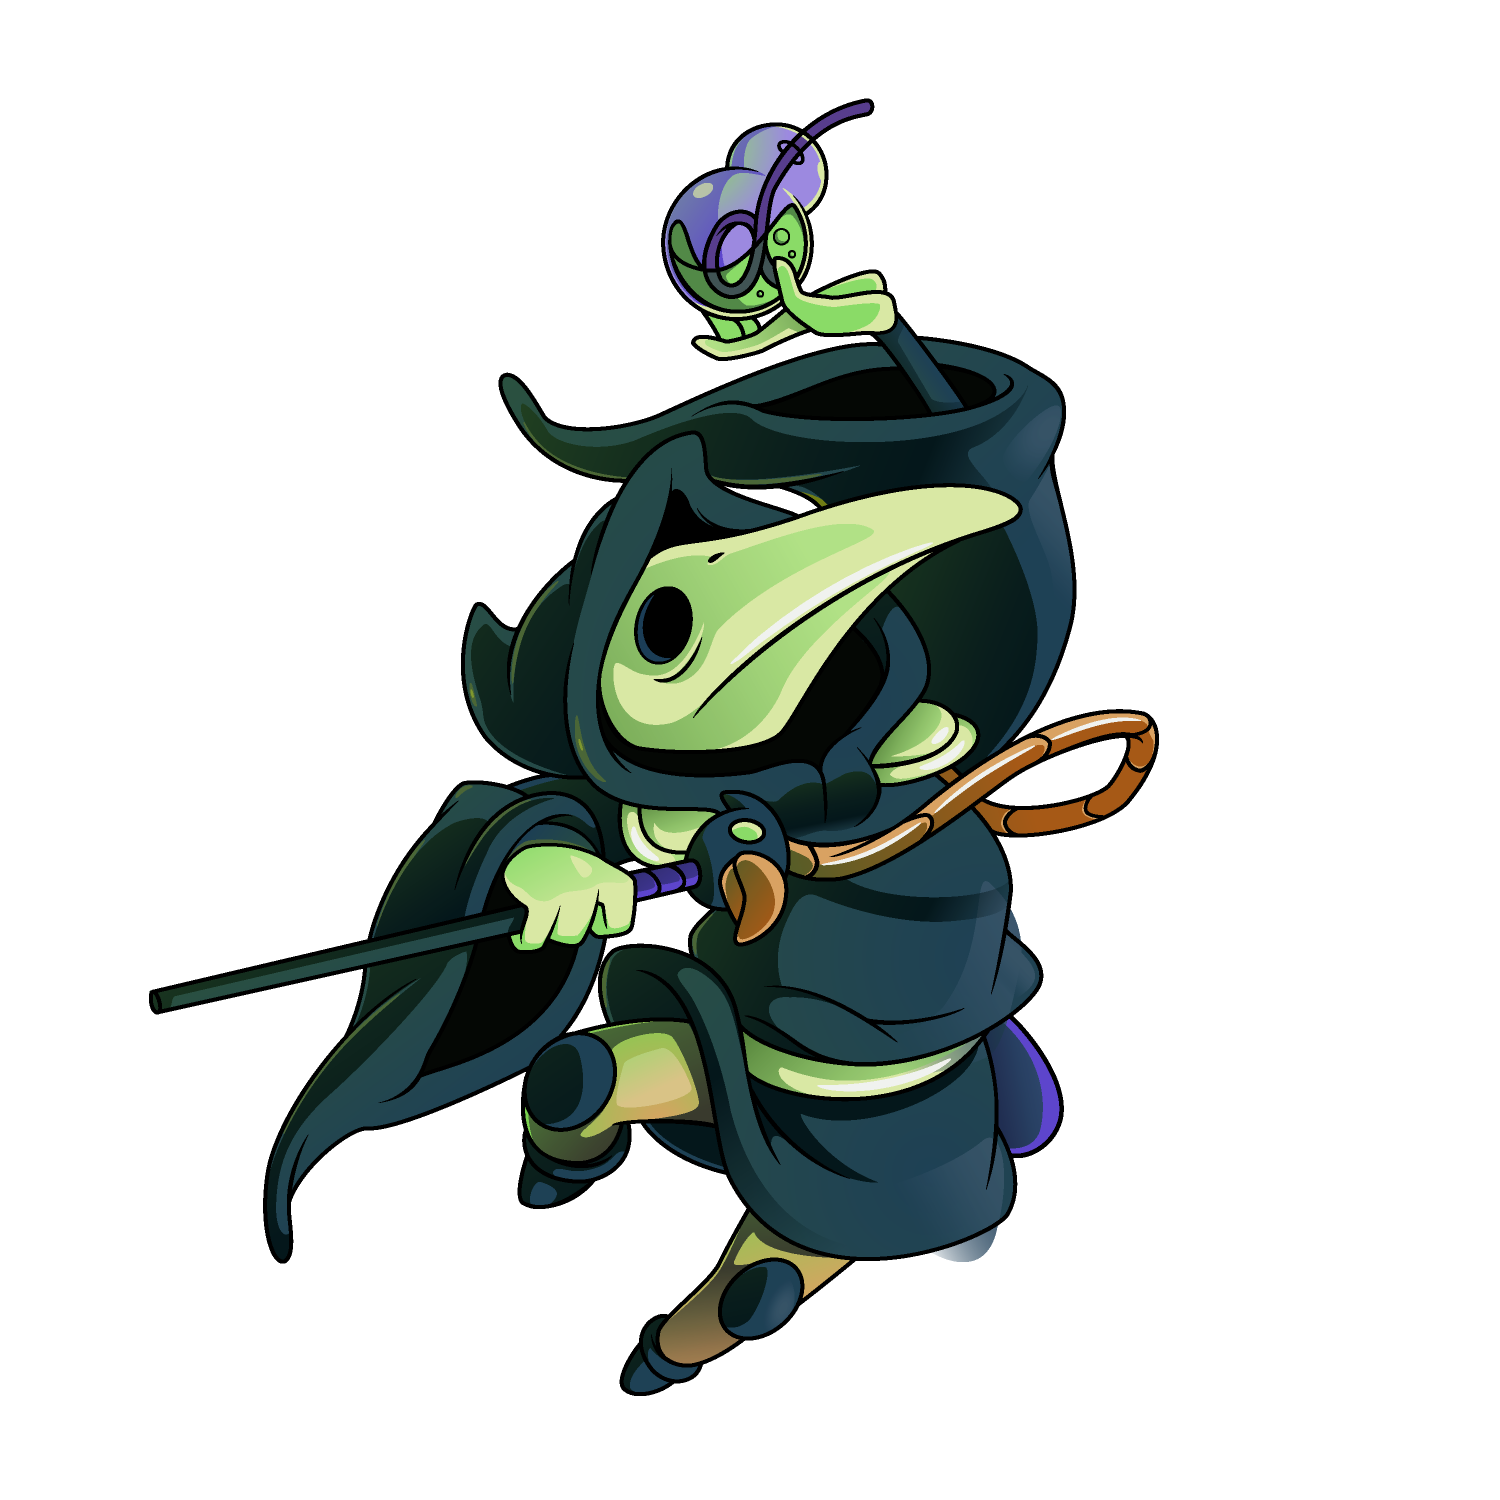 Knights clipart standing. Plague knight vs battles